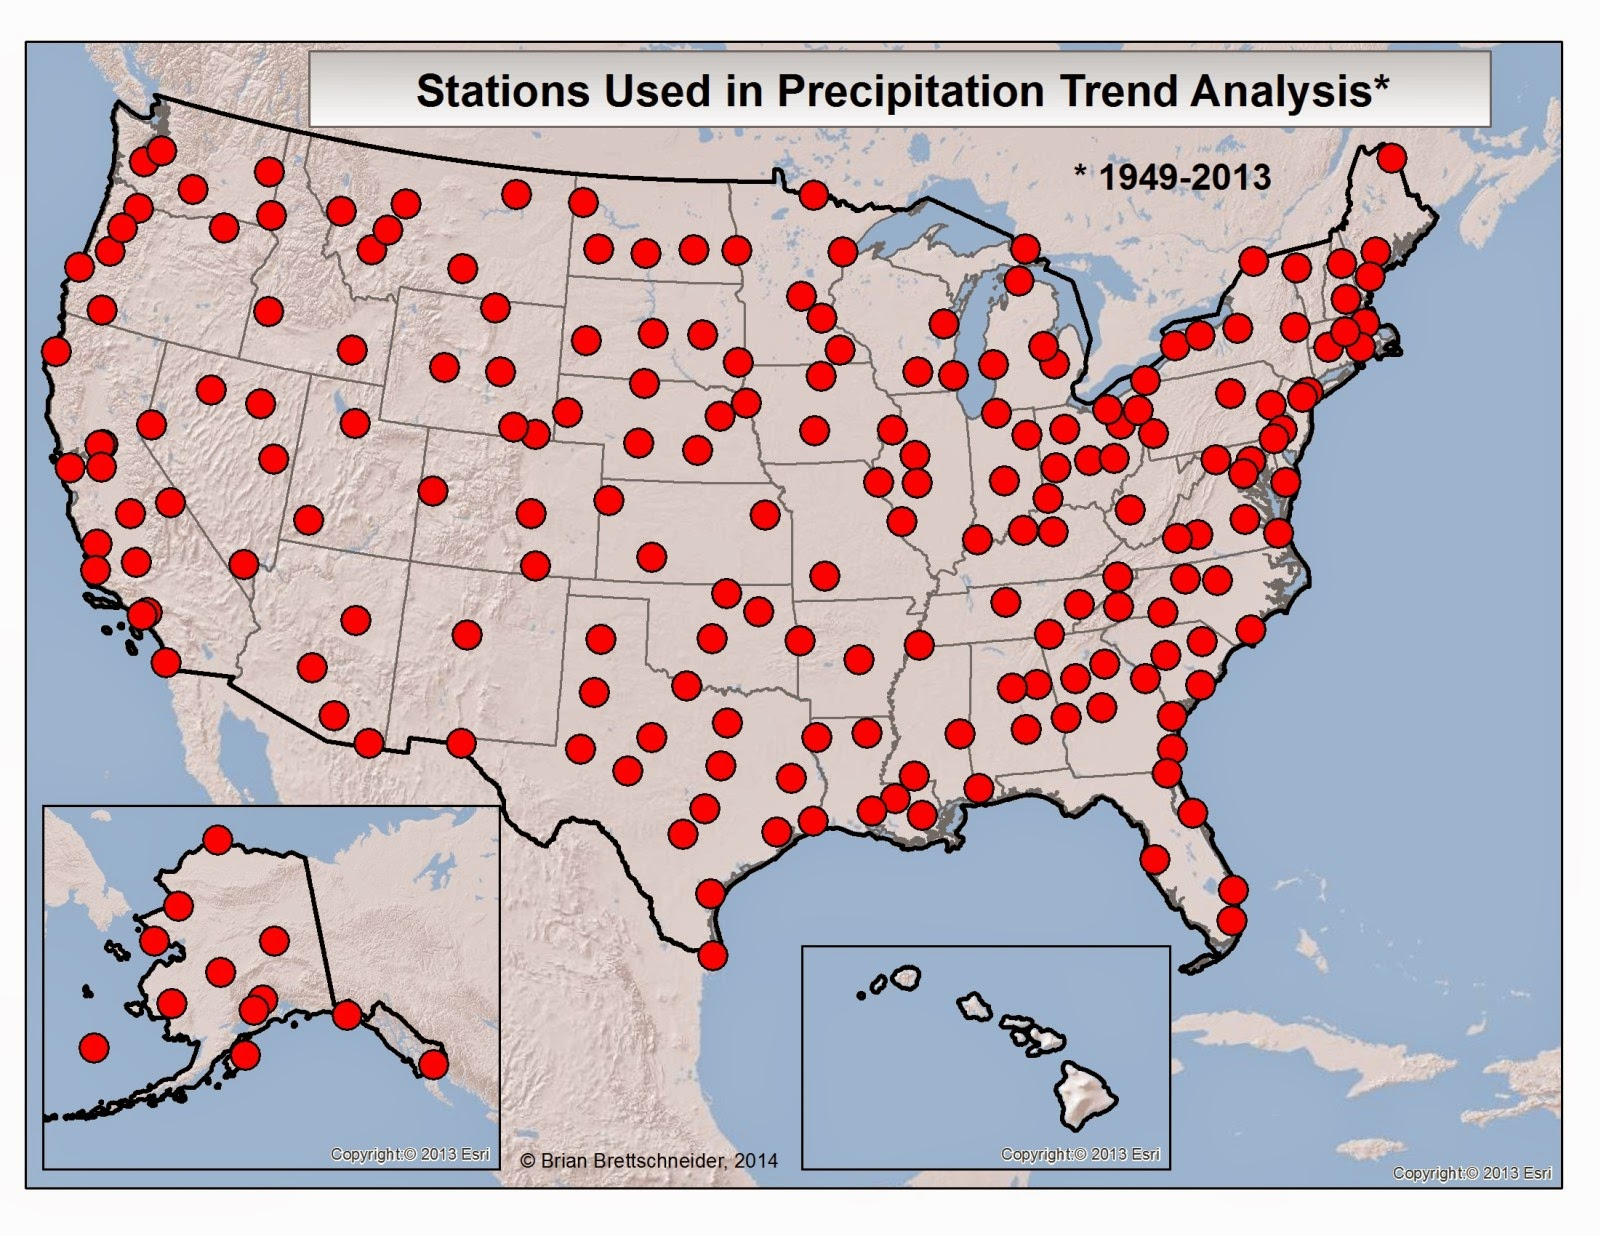 Locations Of Airport Stations With Complete Precipitation Data From 1949 2013 A Total Of 207 Stations Met The Criteria